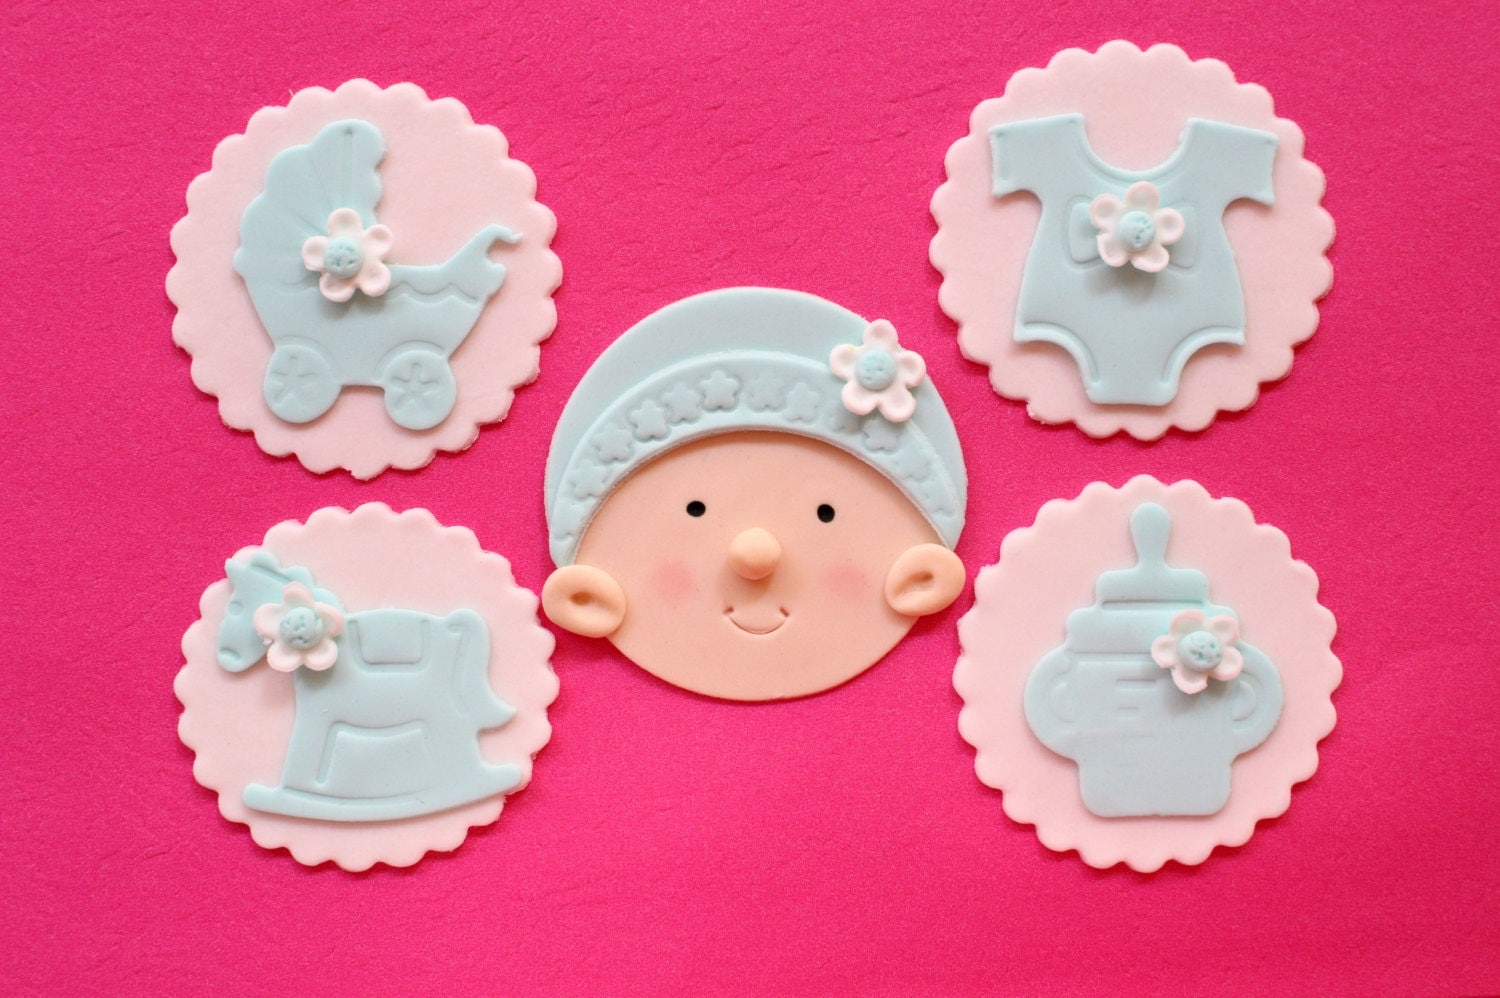 Cake Toppers Baby Shower Etsy : baby girl cupcake toppers 12pcs edible baby shower fondant